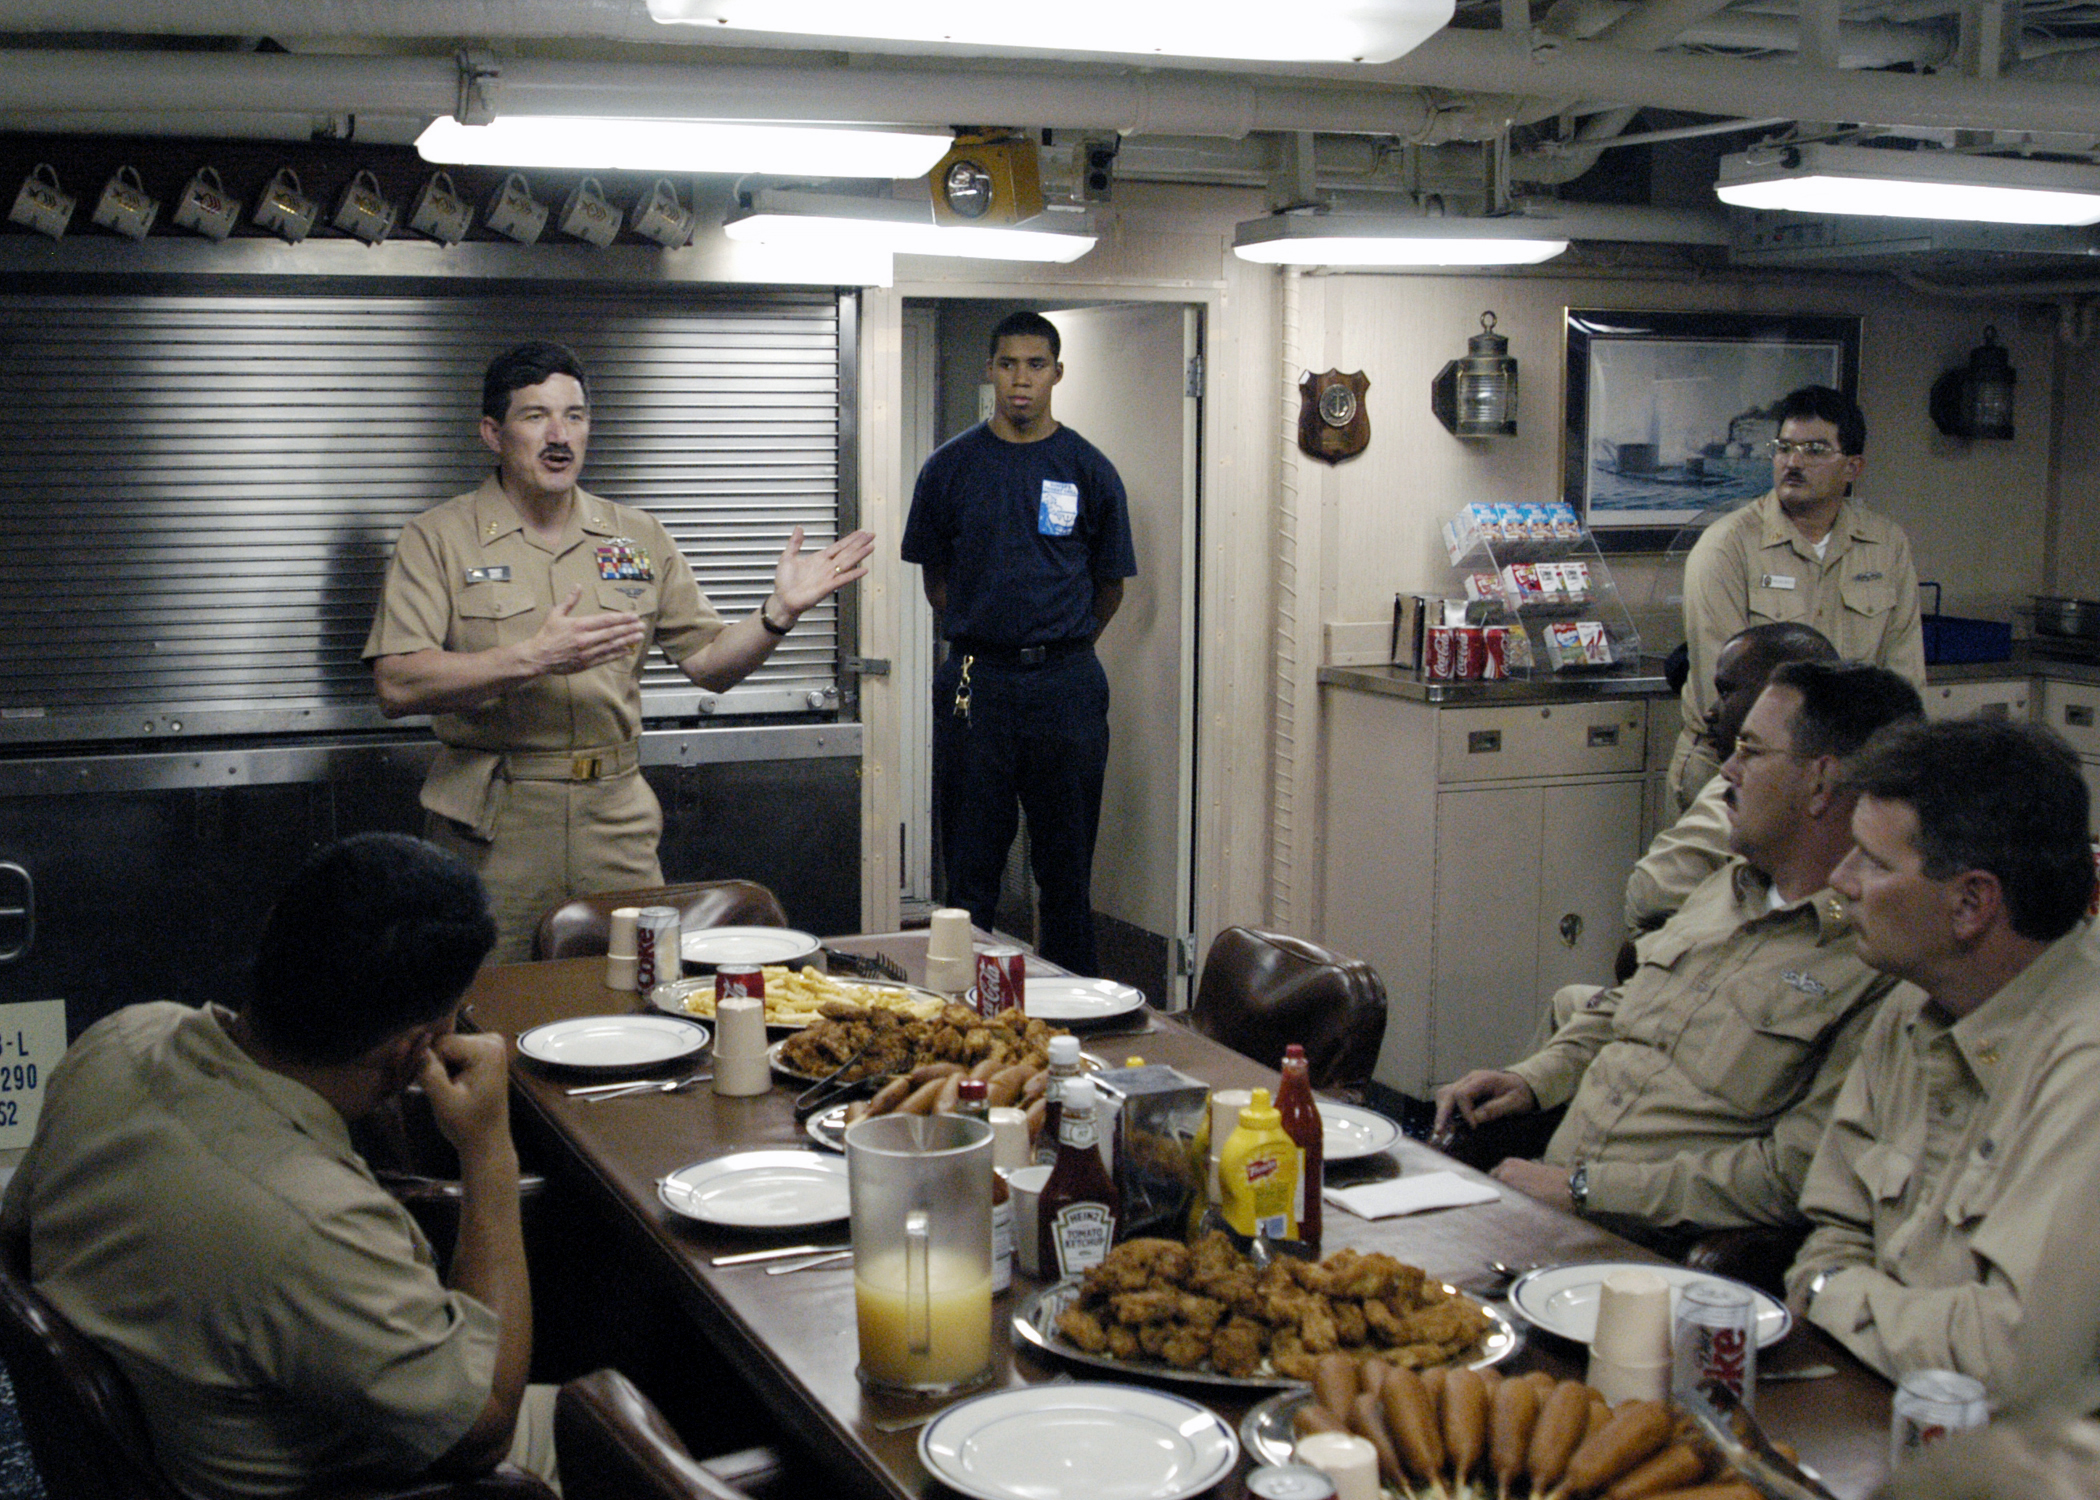 File:US Navy 030424-N-0715P-099 Master Chief Petty Officer ...